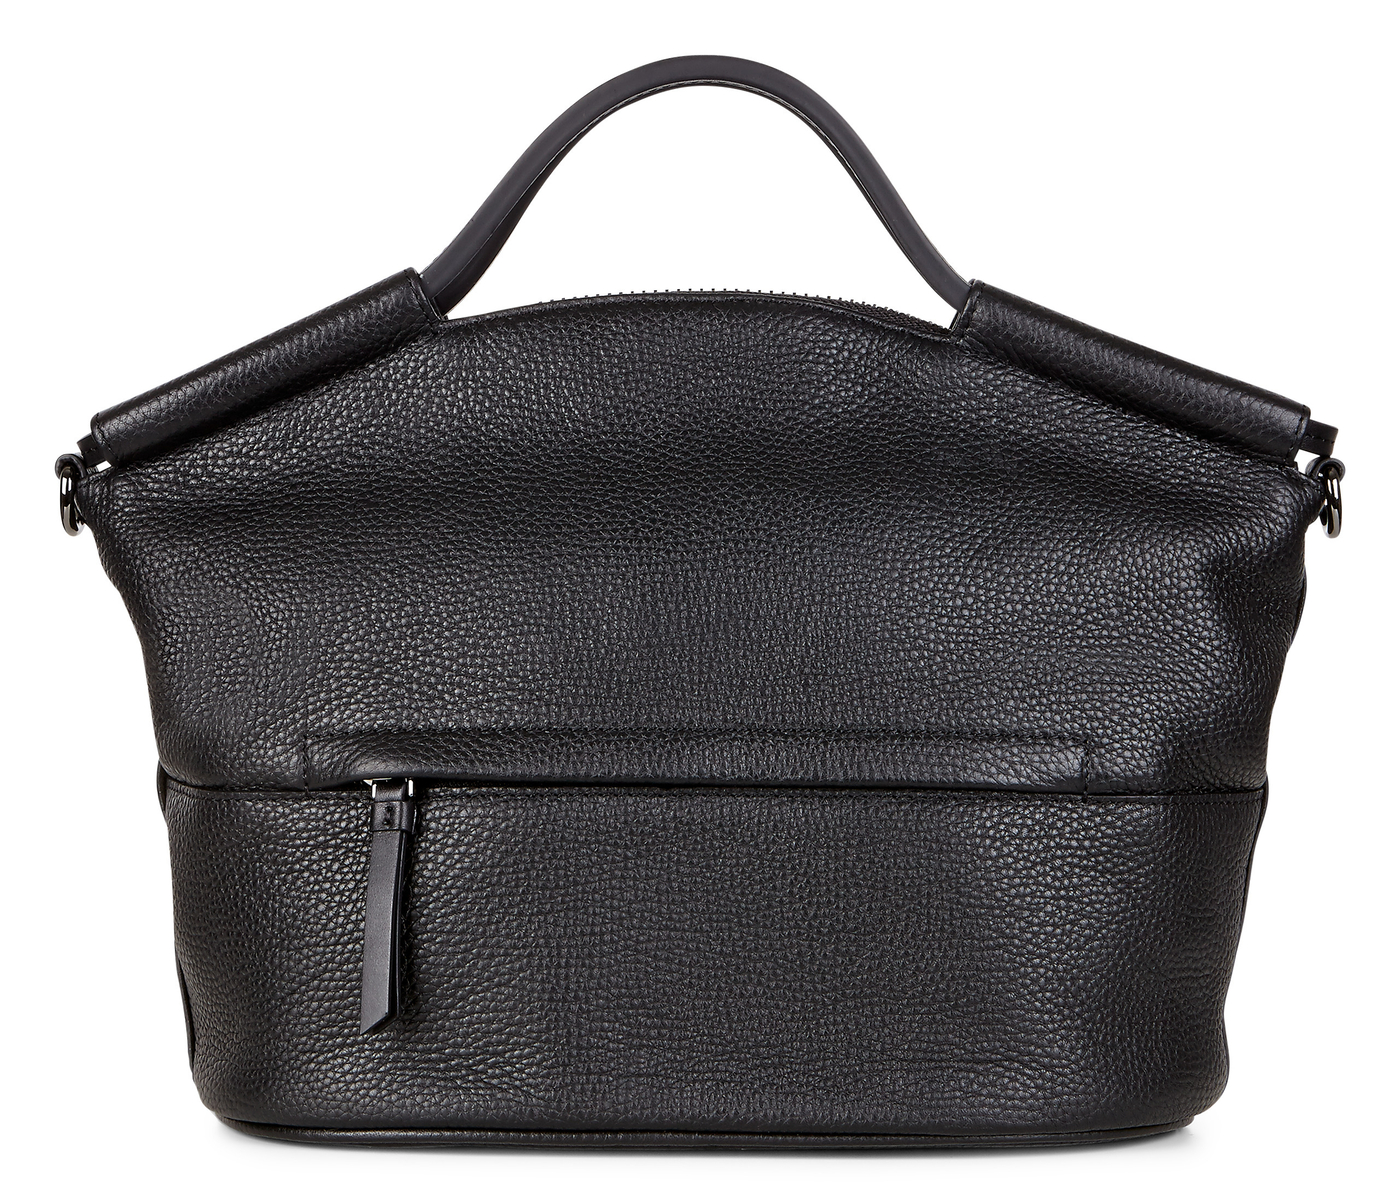 ECCO SP 2 Medium Doctor's Bag